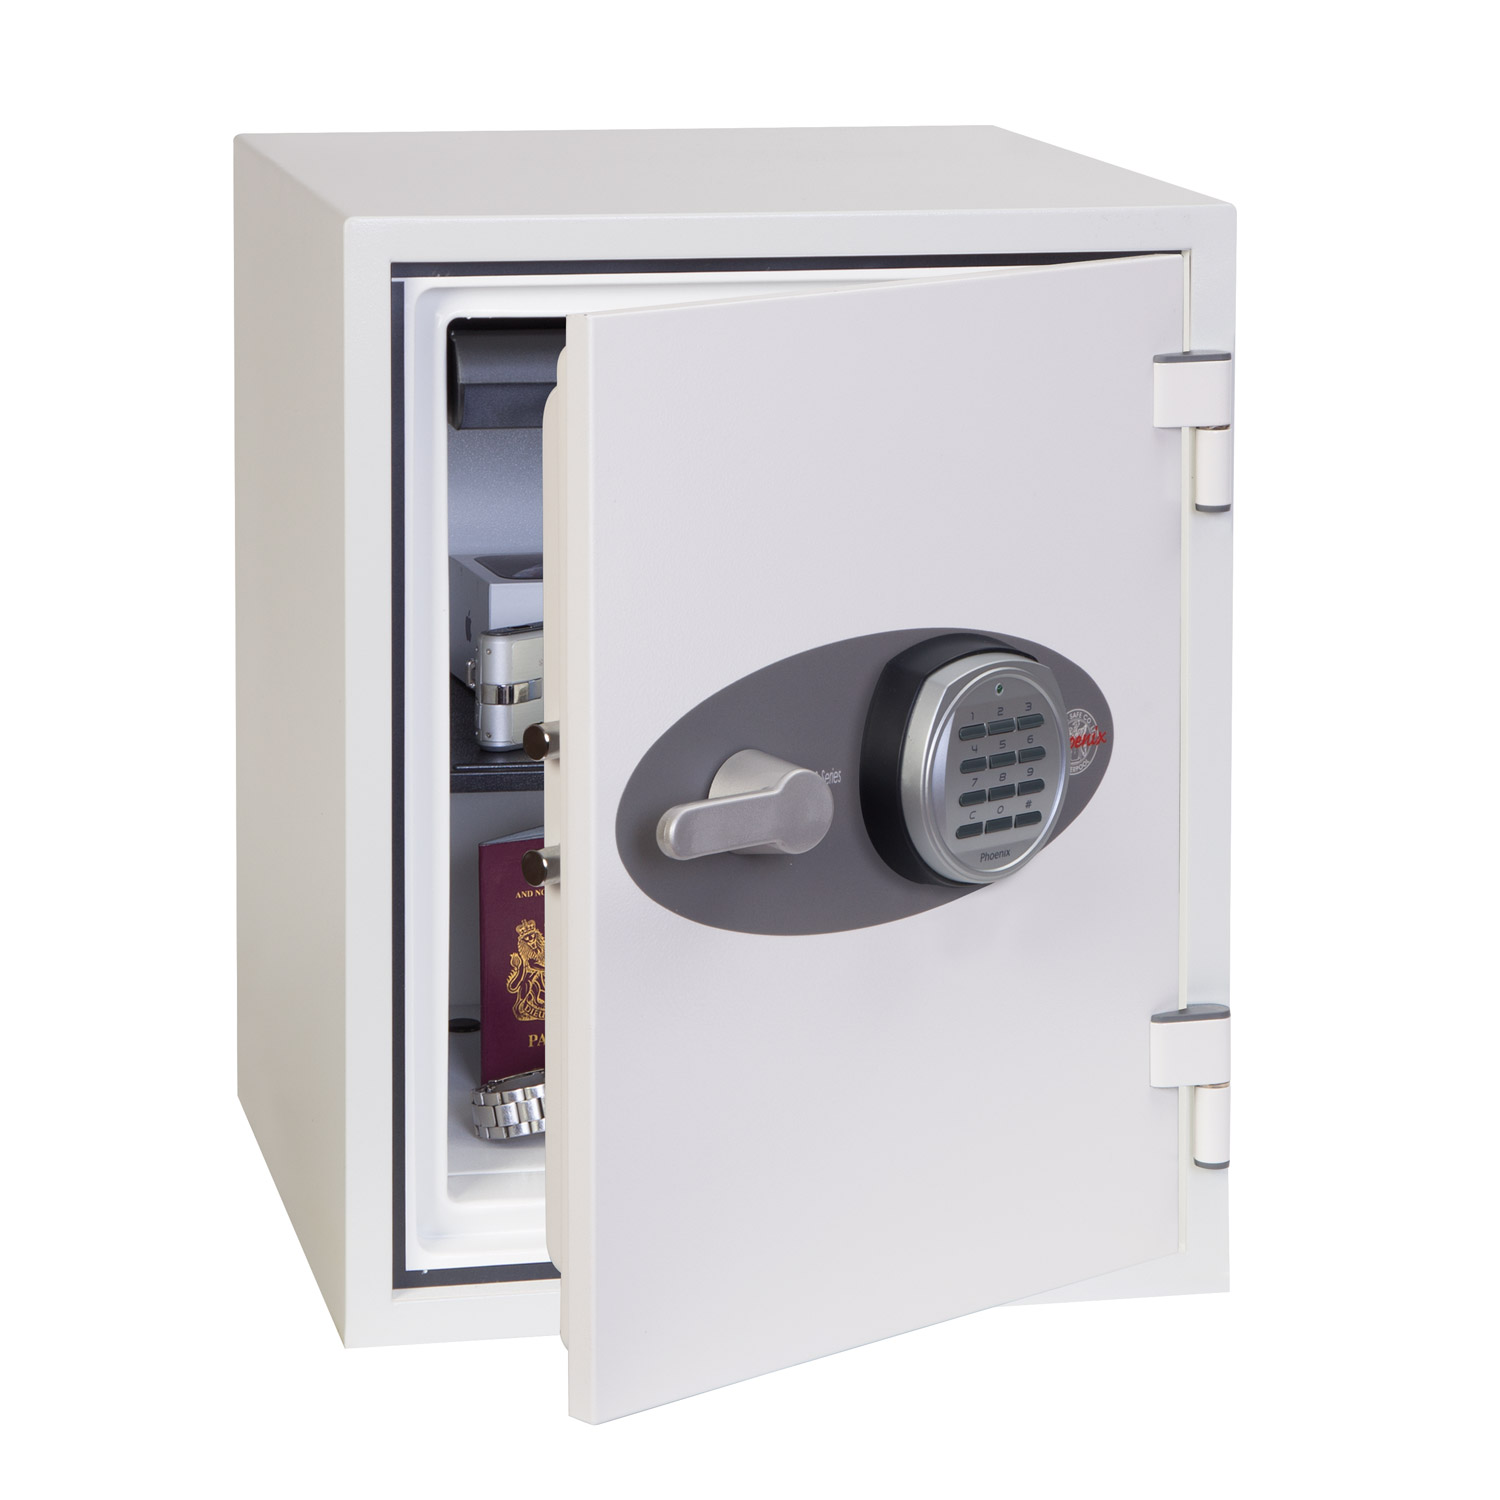 Phoenix Titan Fs1283e Size 3 Fire Security Safe With Electronic Lock Fire Security Safe Phoenix Safe